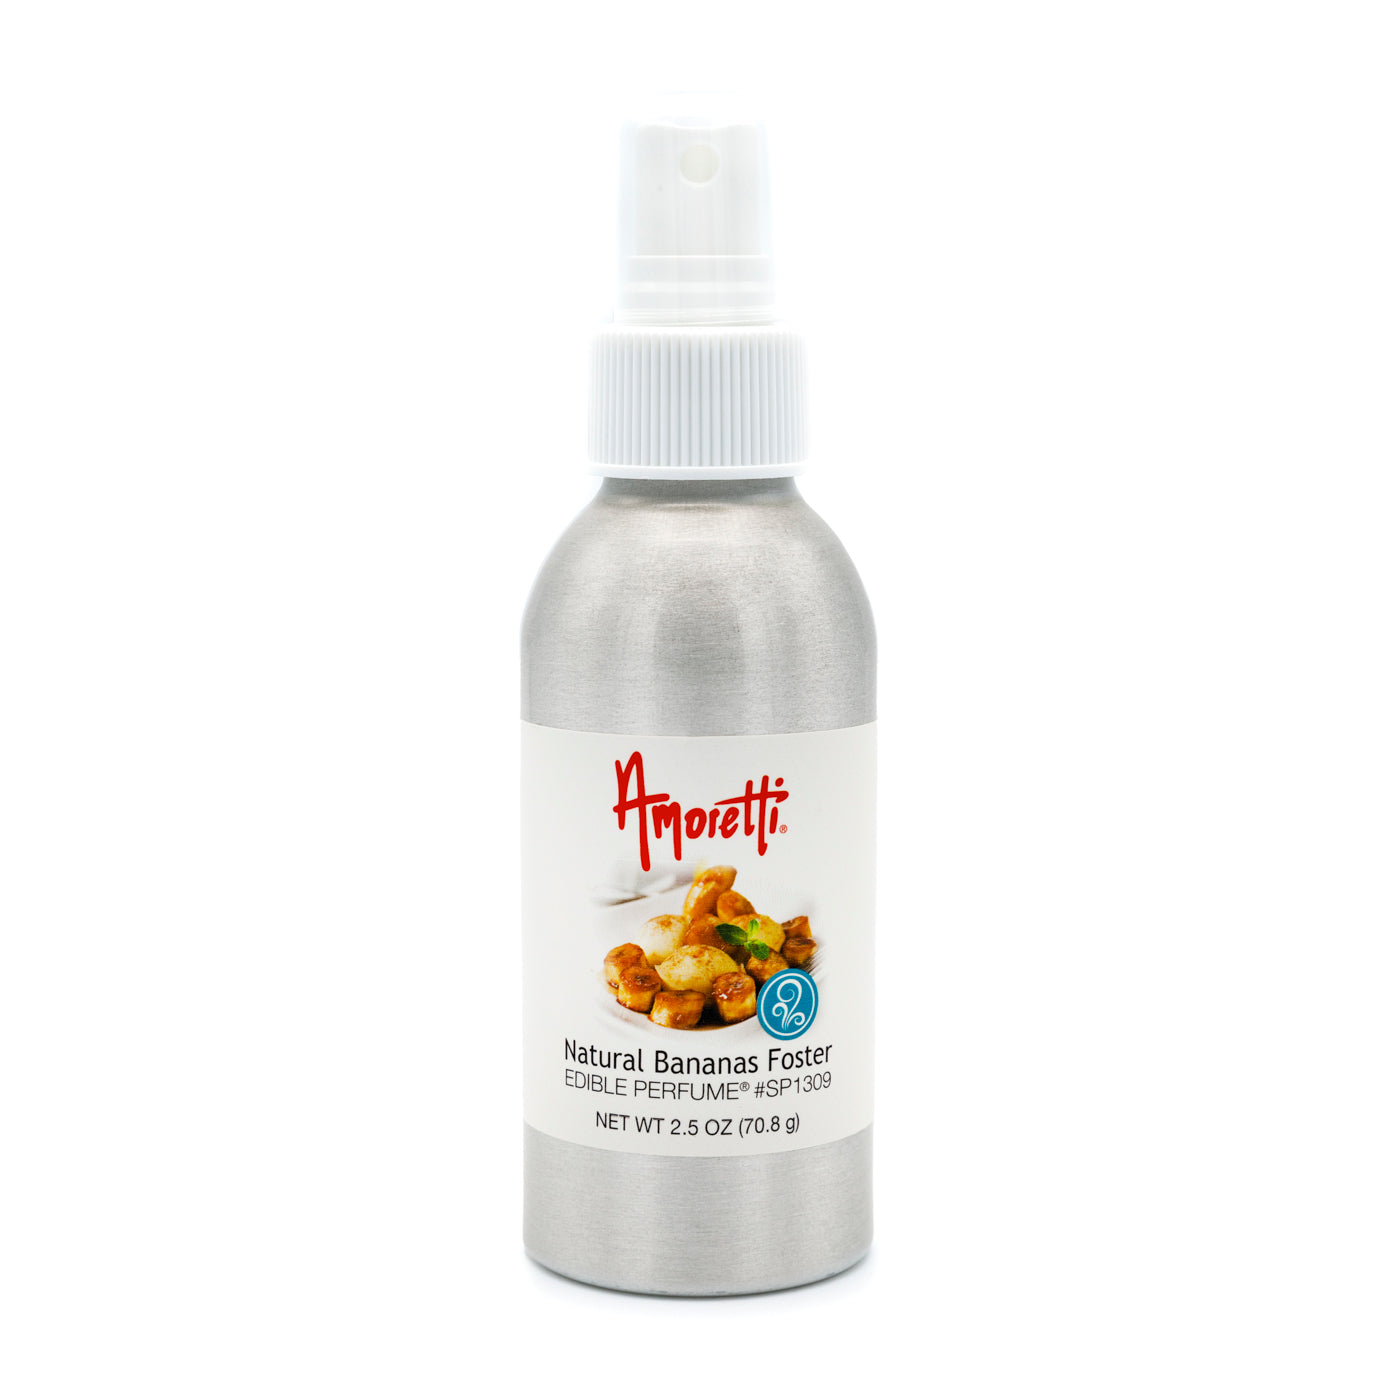 Banana Foster Edible Perfume Spray